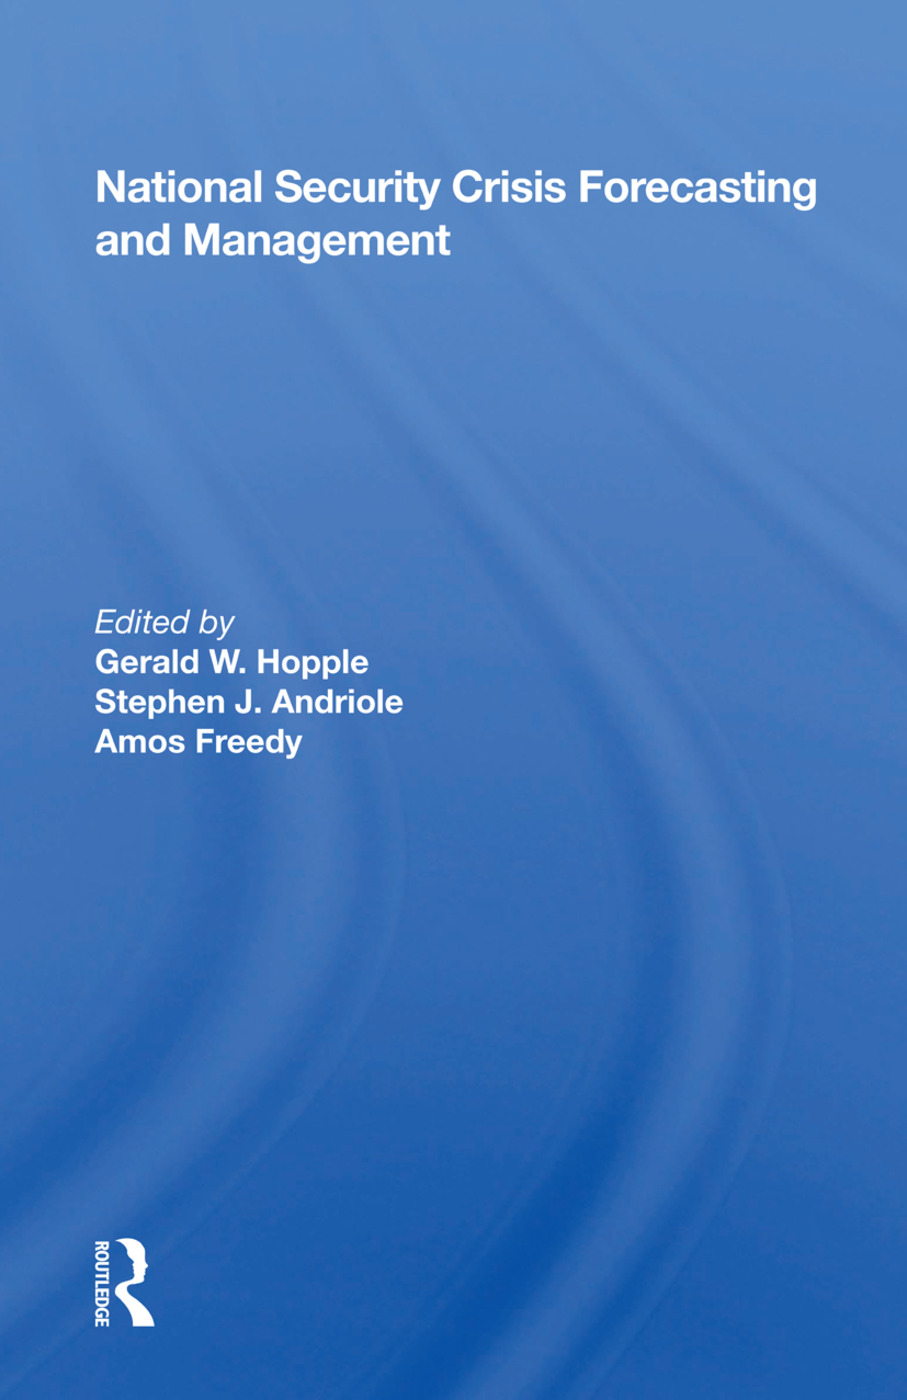 National Security Crisis Forecasting And Management book cover